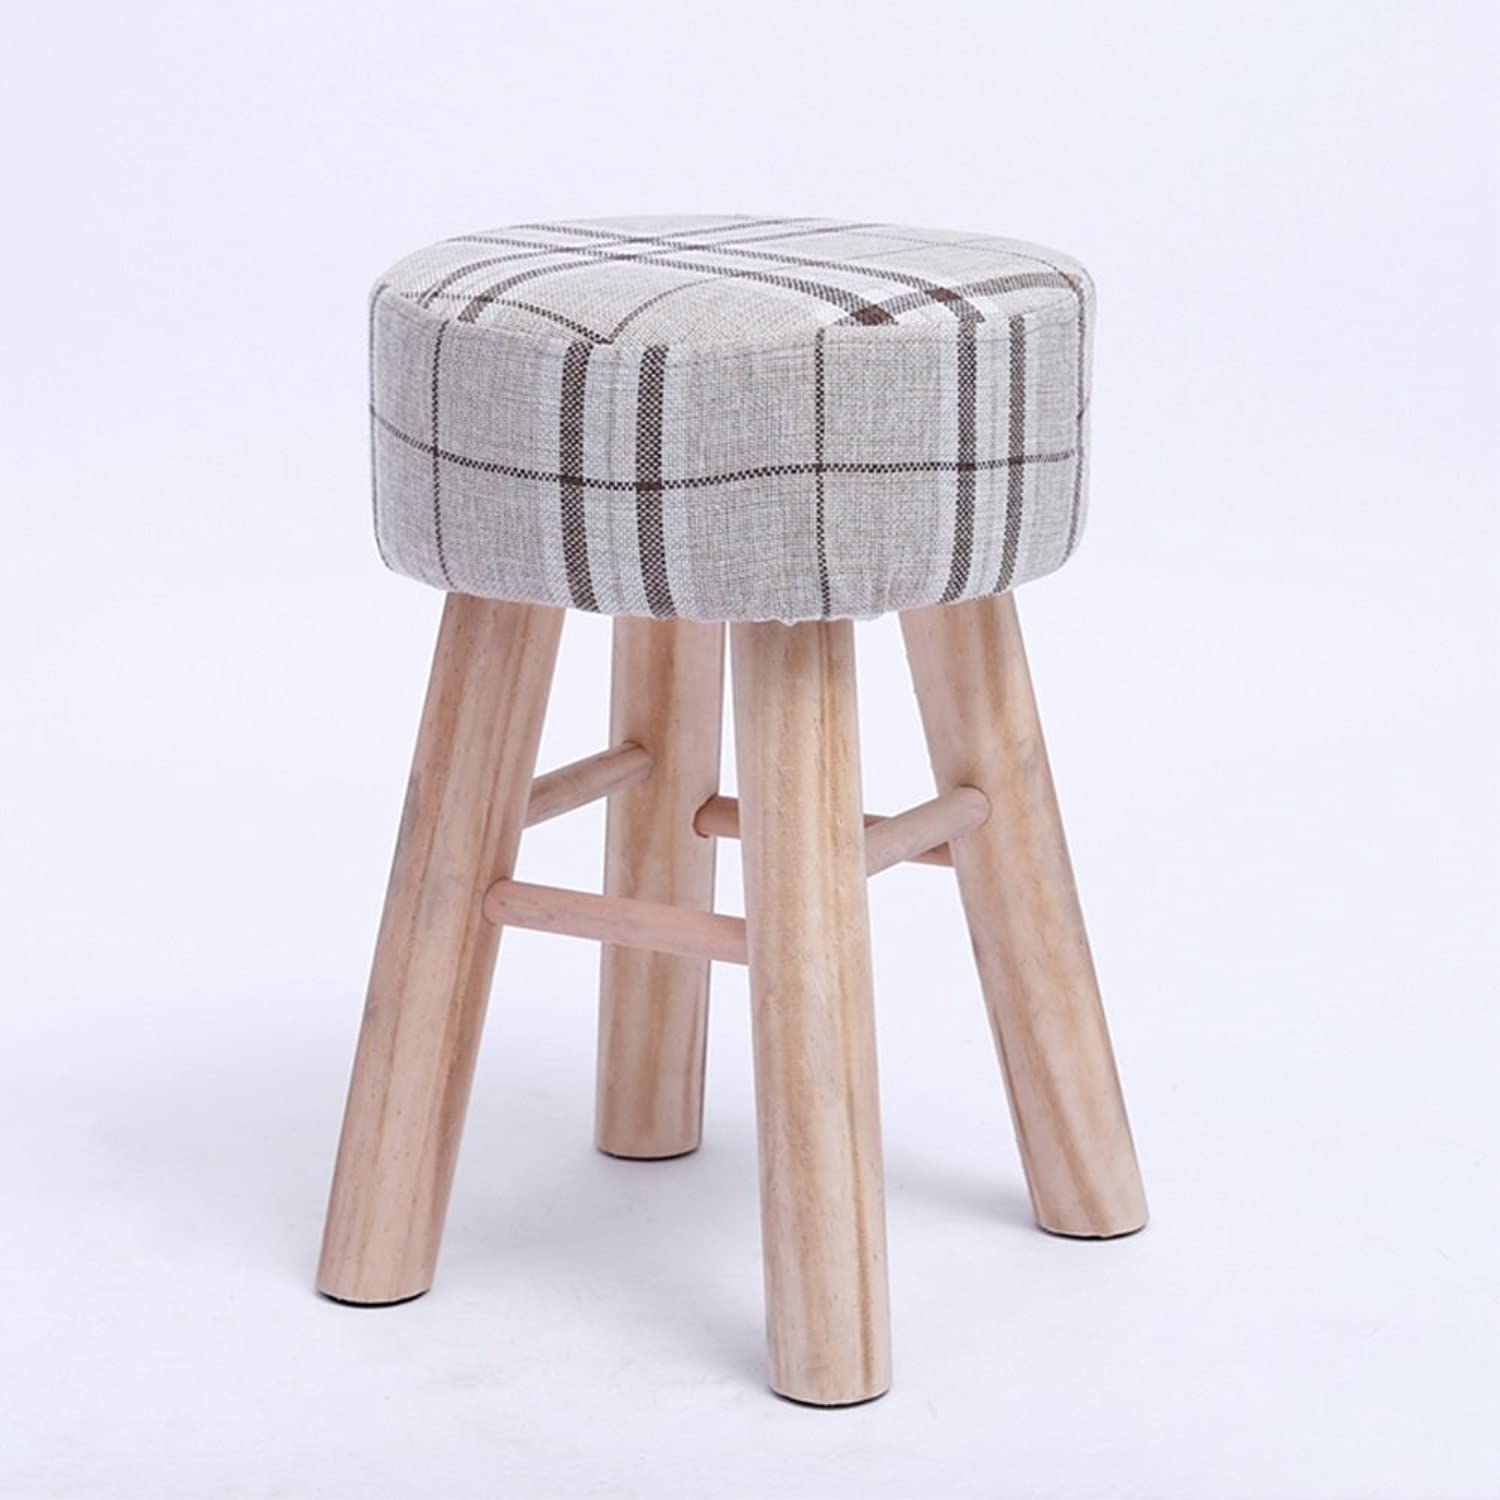 BO Wen Home- Fashion Creative Small Stool Fabric Dwarf Home Solid Wood for shoes Stool Small Bench